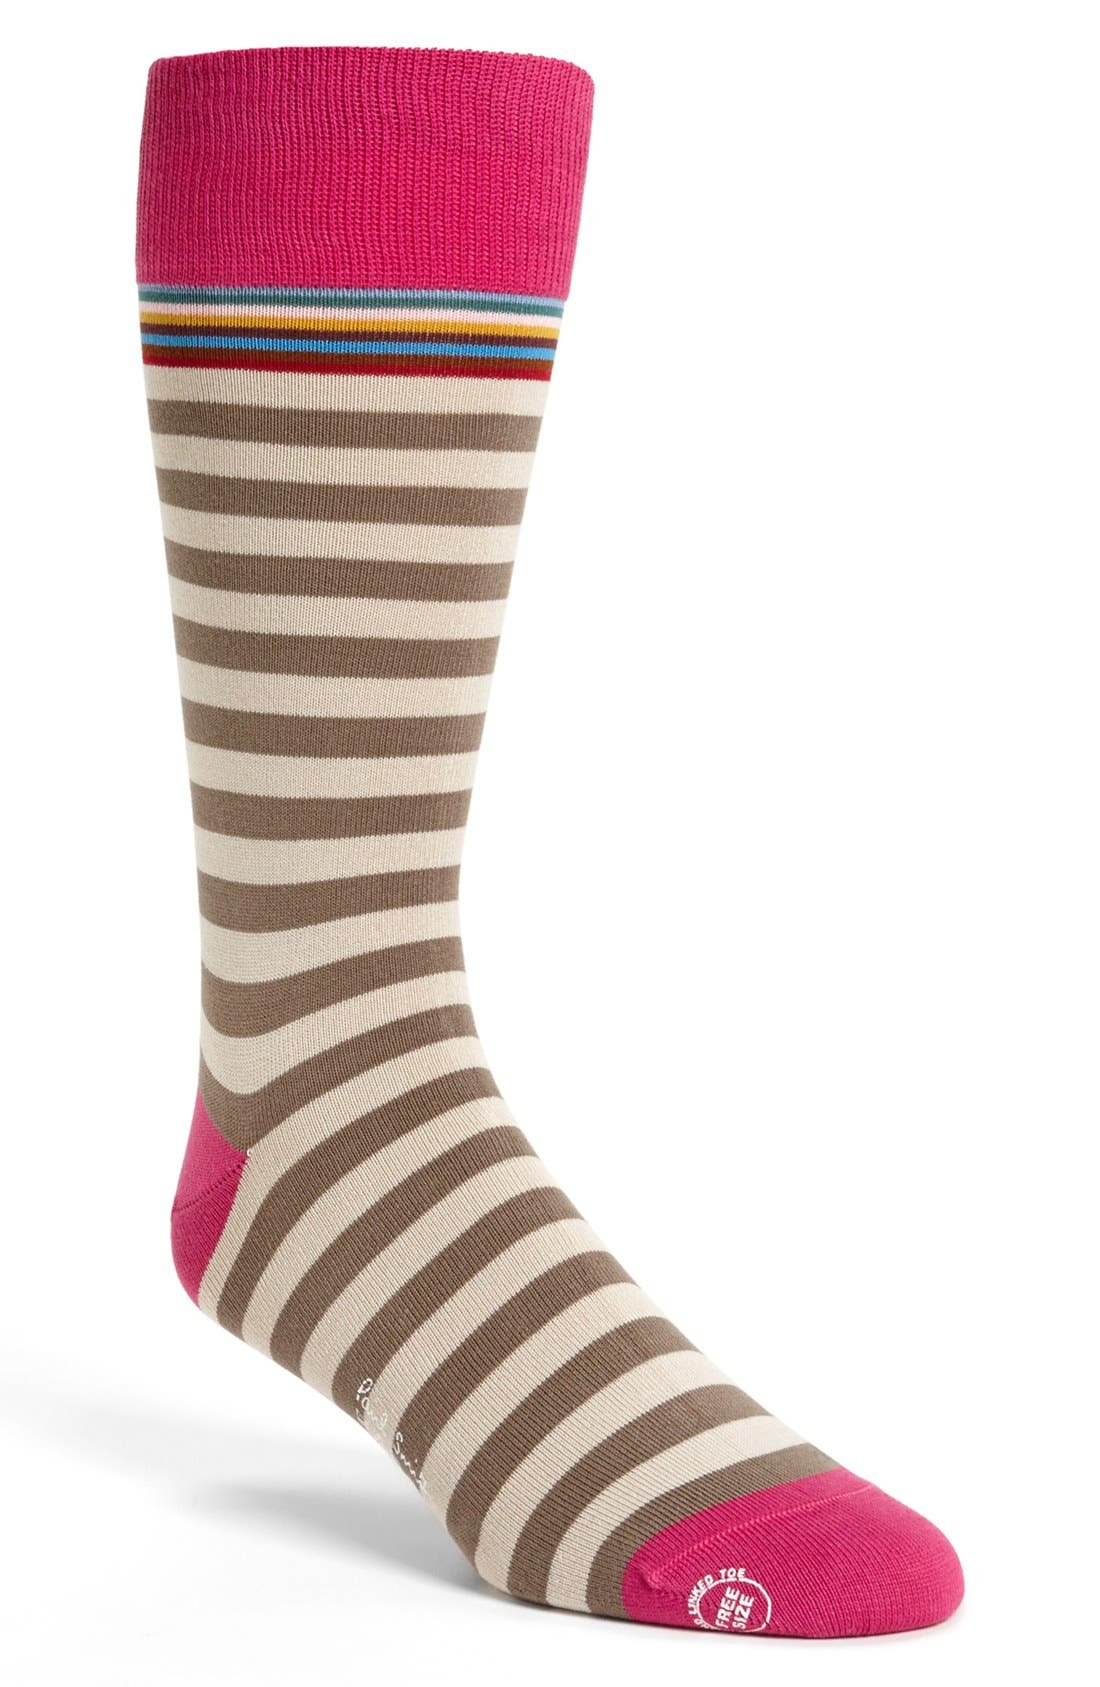 Main Image - Paul Smith Accessories Multi Stripe Socks